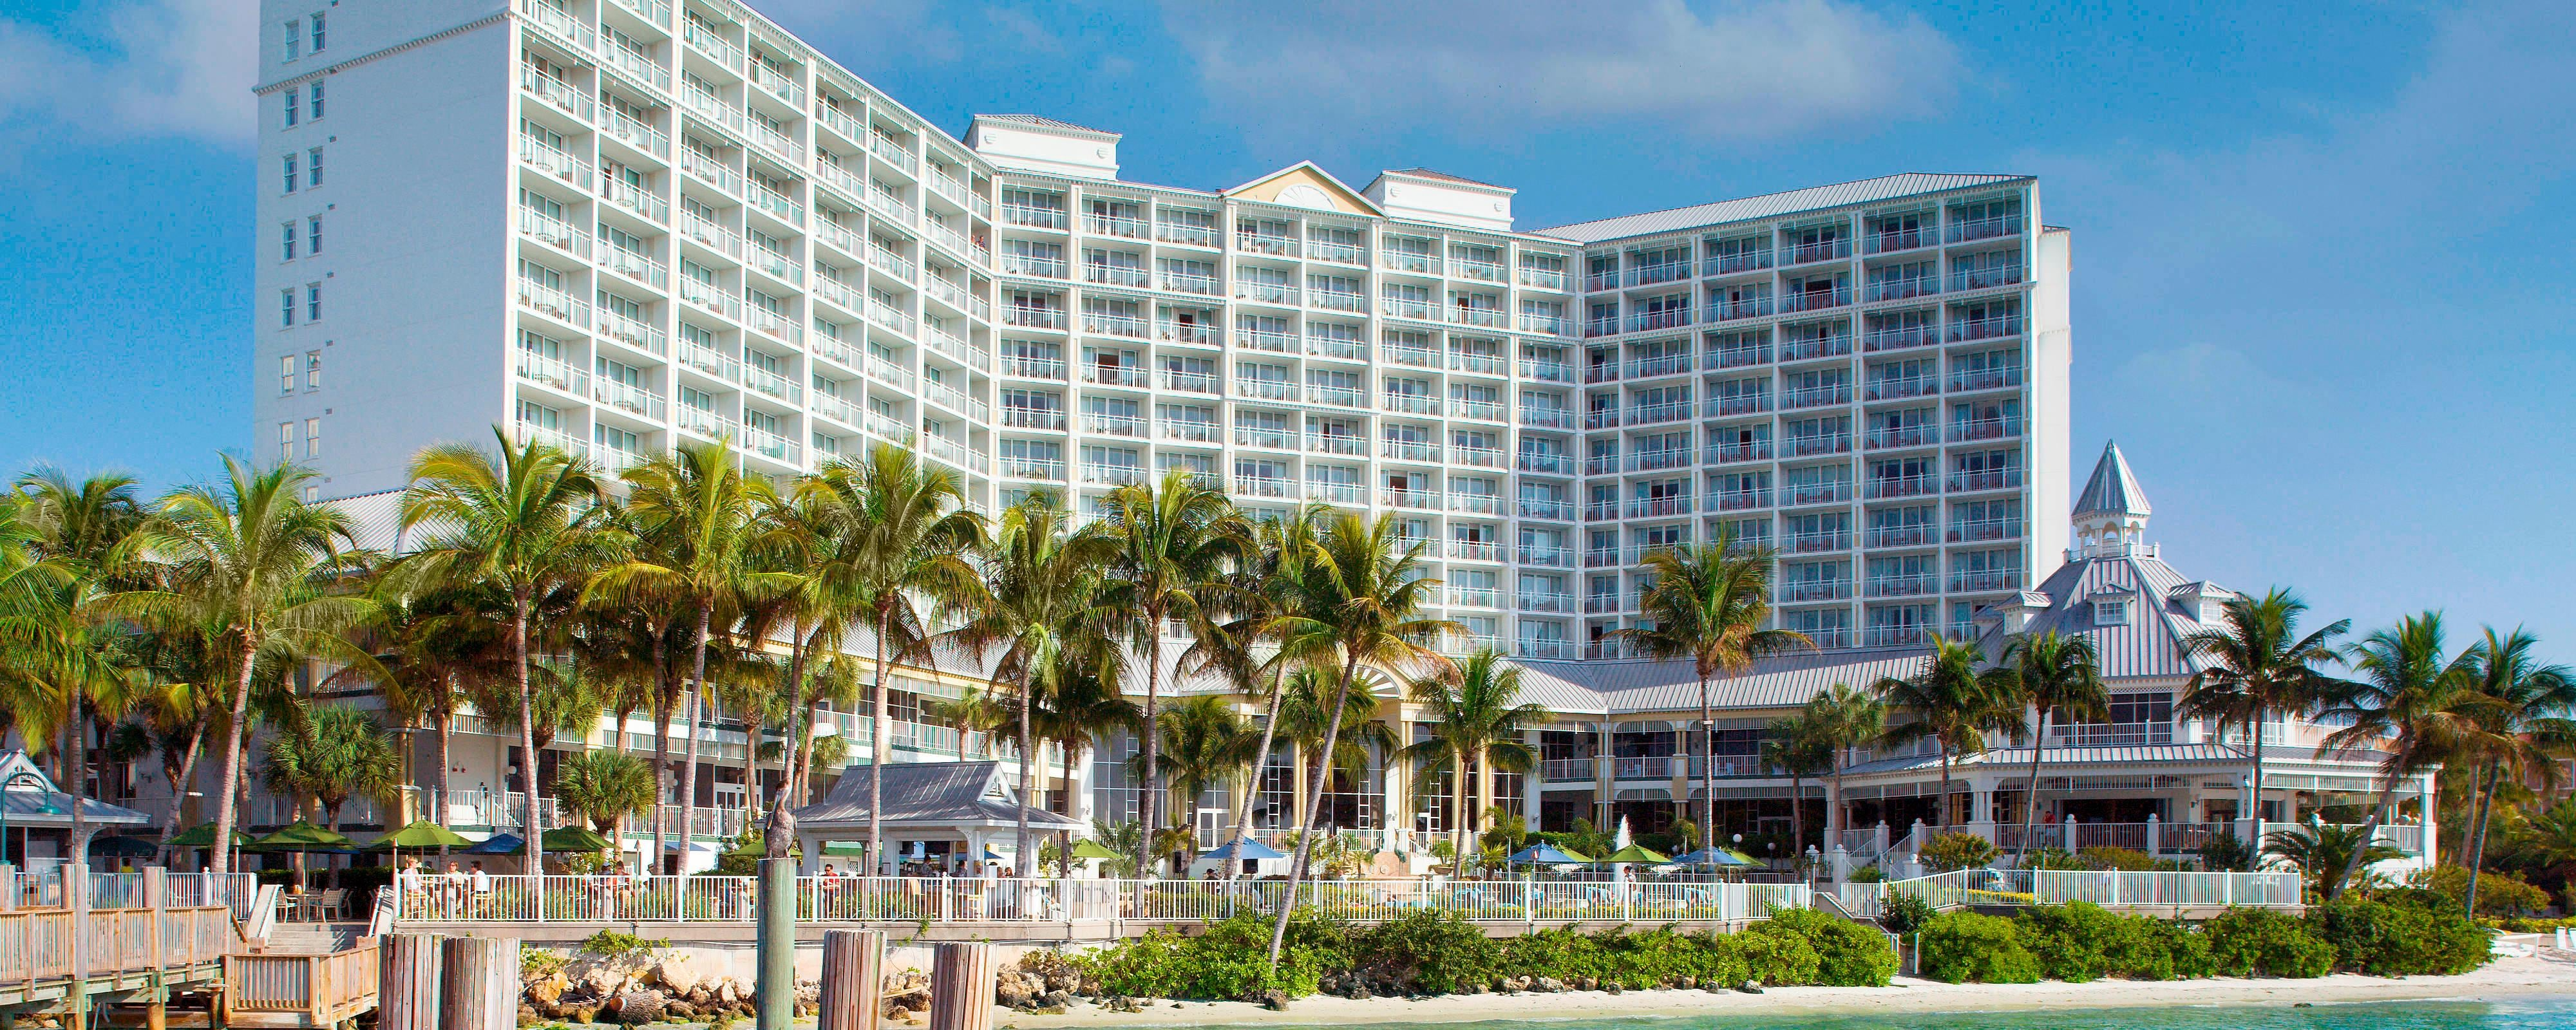 781b6dbc7 Fort Myers Resort | Sanibel Harbour Marriott Resort & Spa